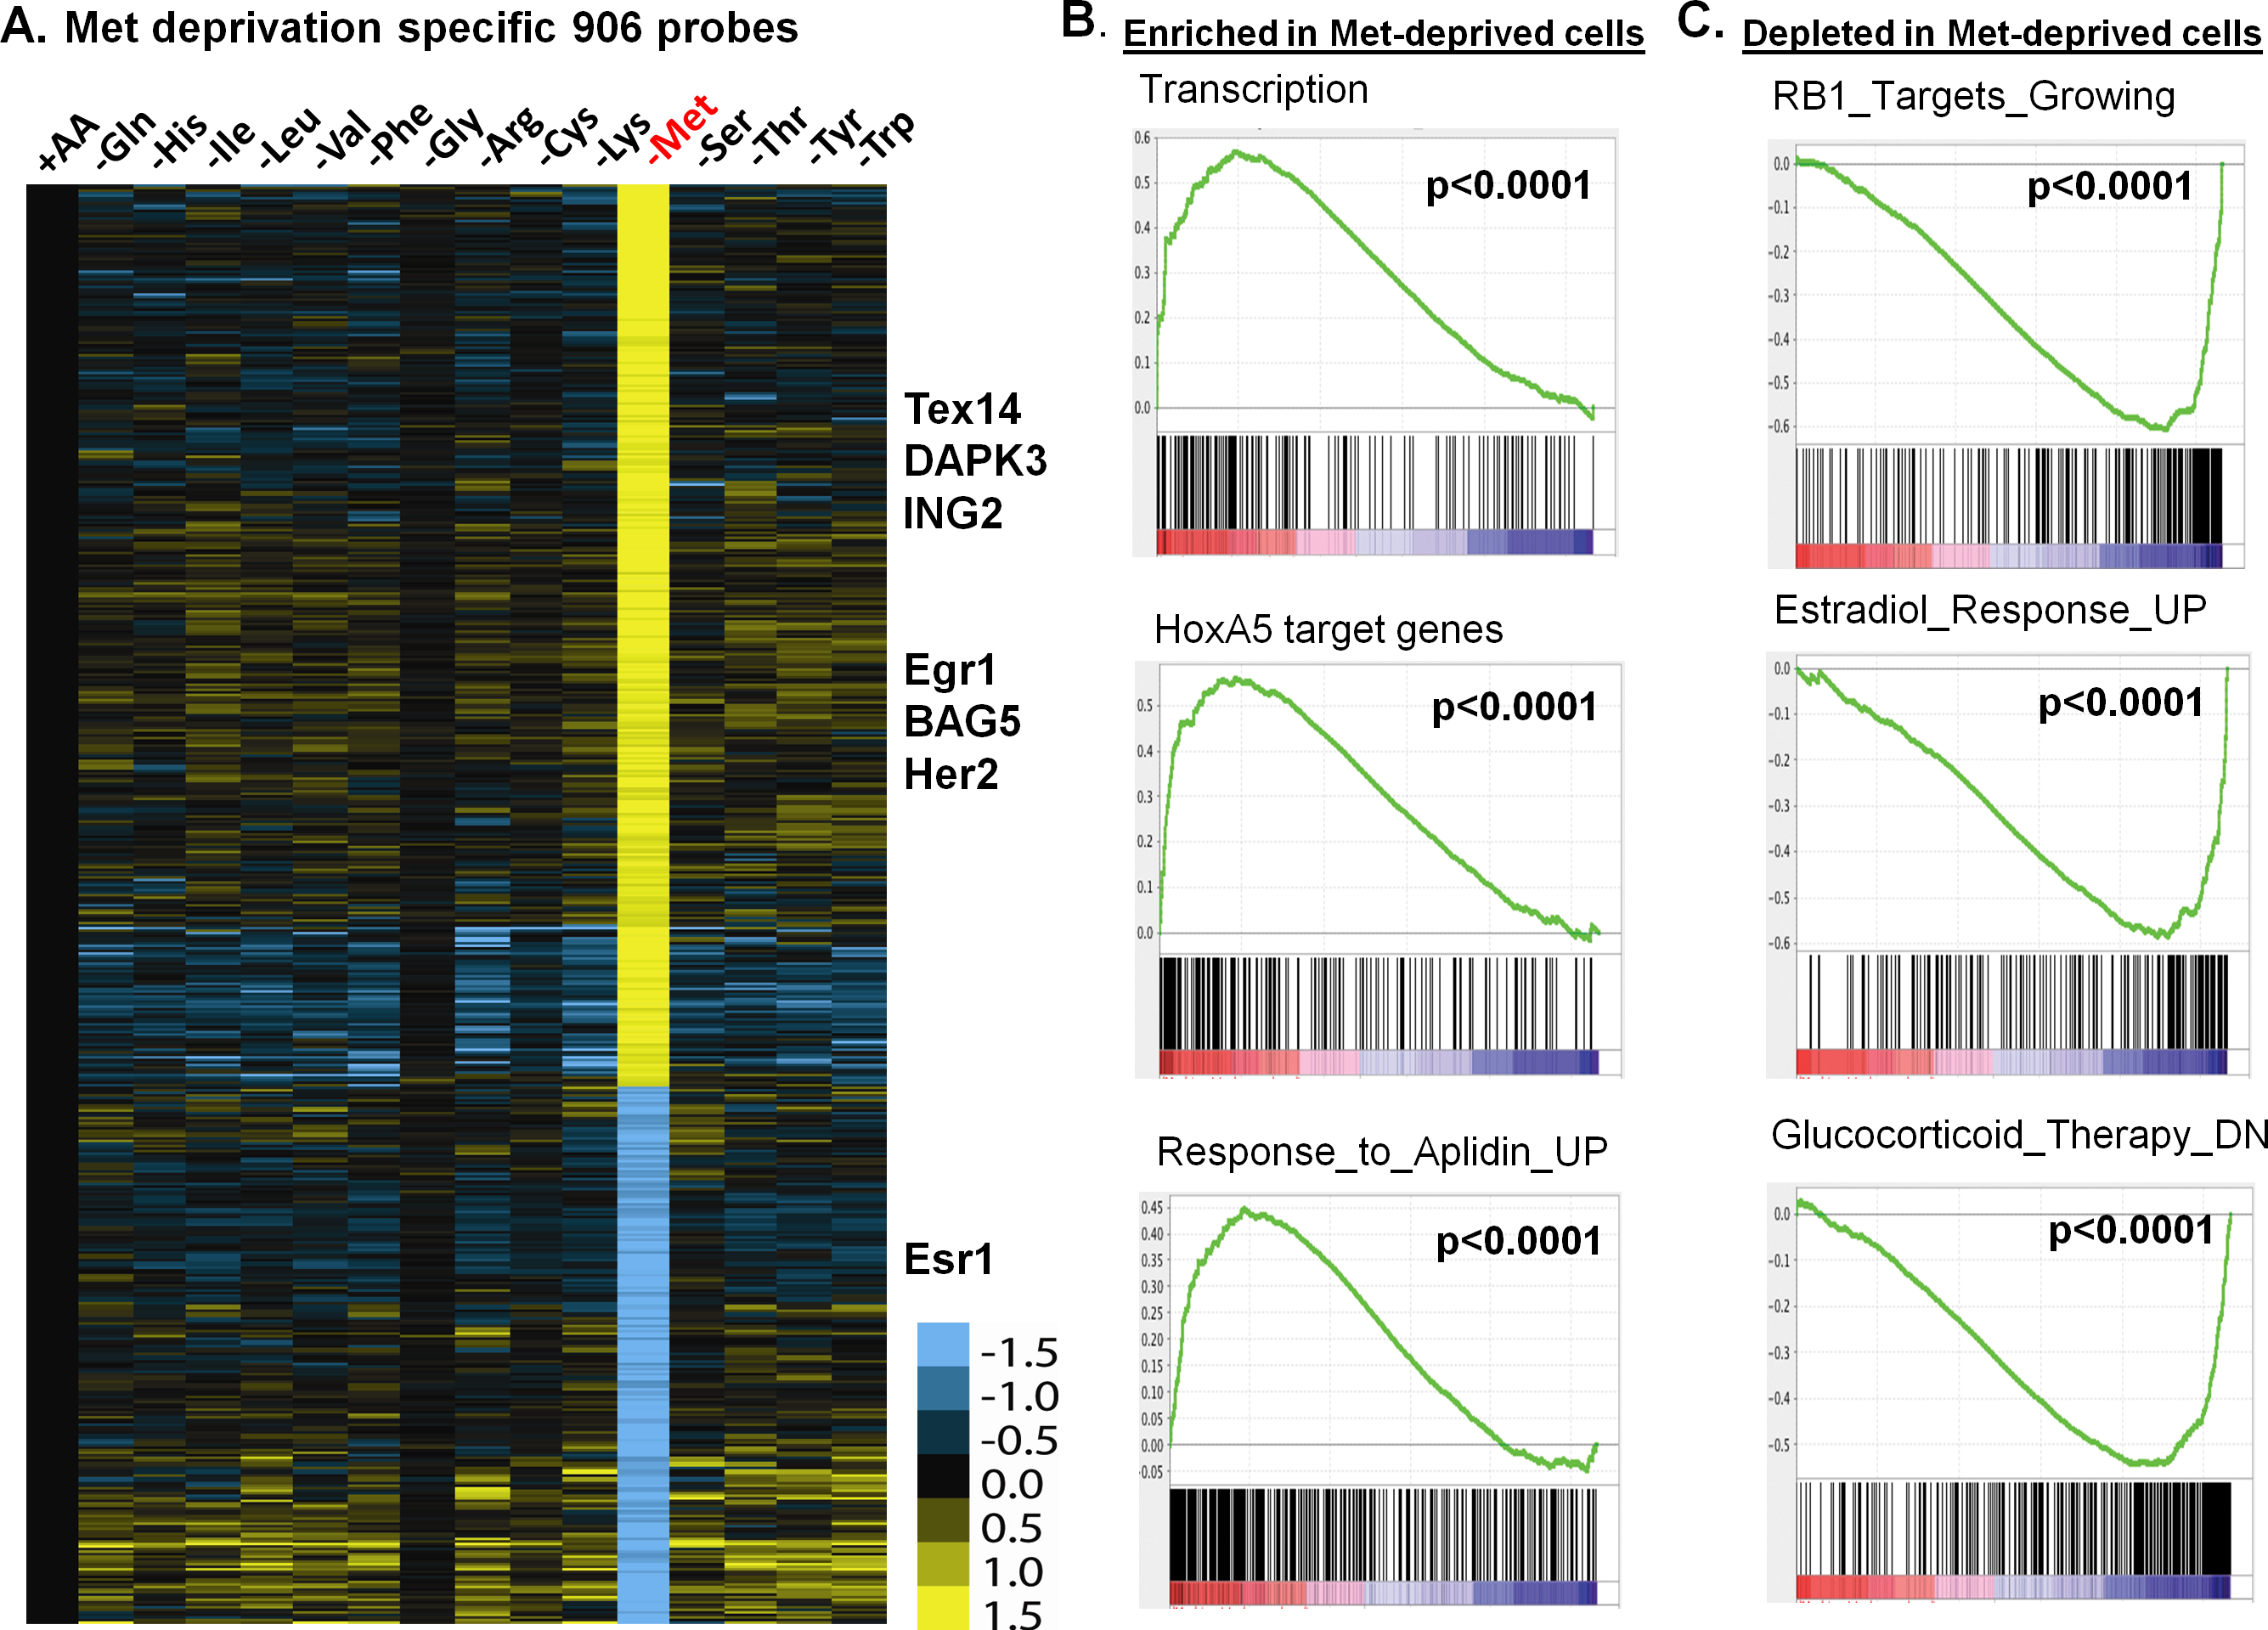 The methionine-deprived specific transcriptional response.